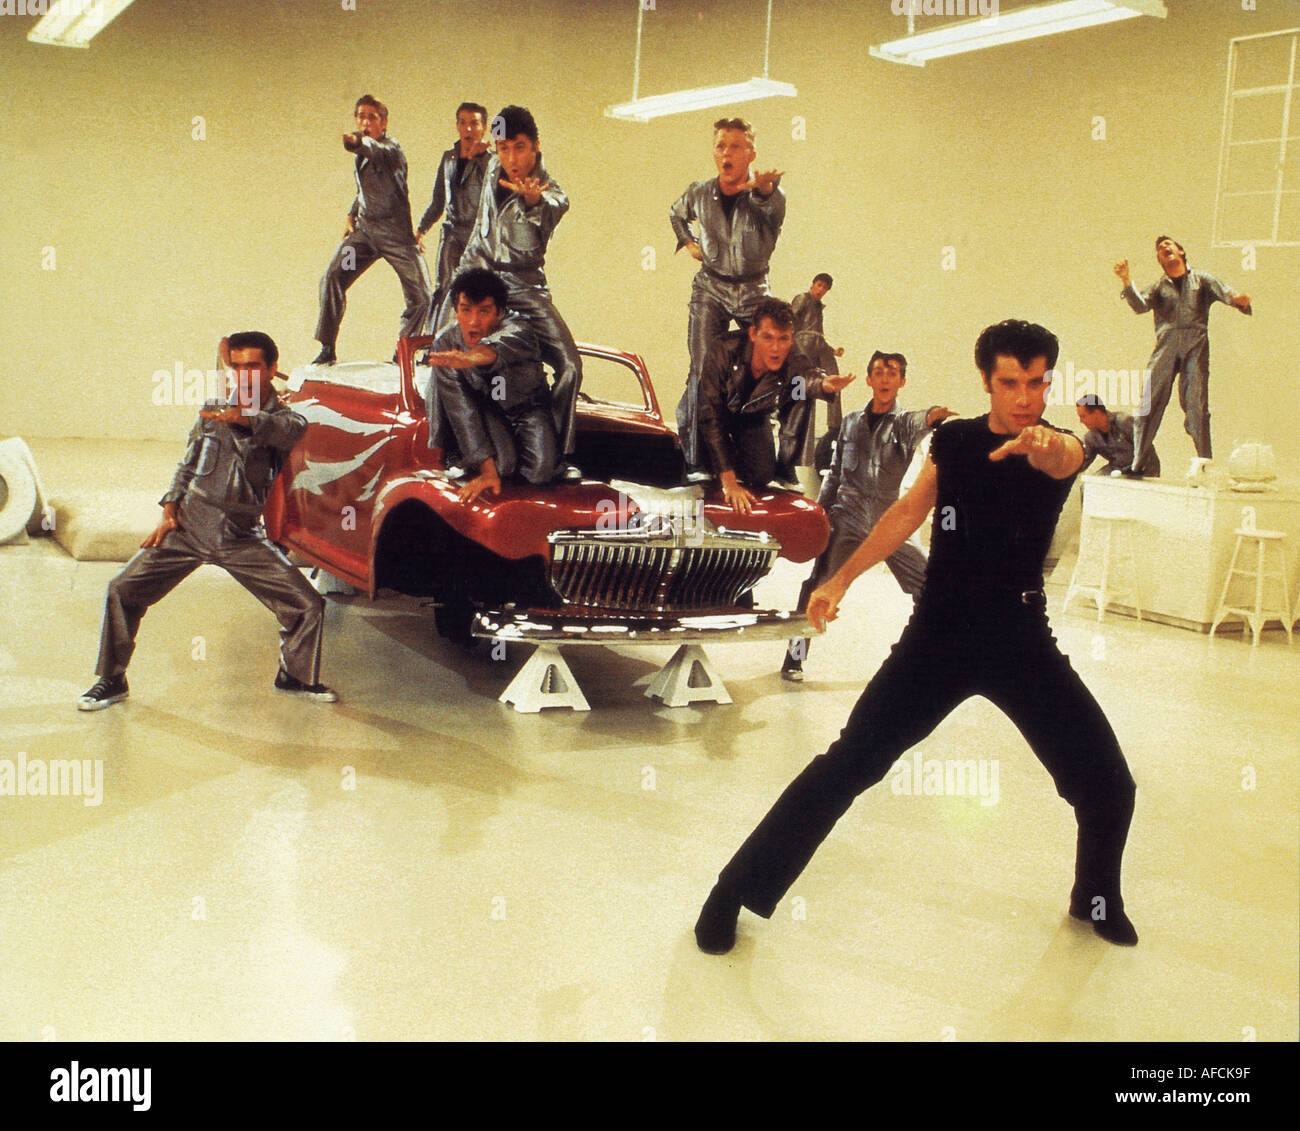 GREASE 1978 film musical with John Travolta right - Stock Image